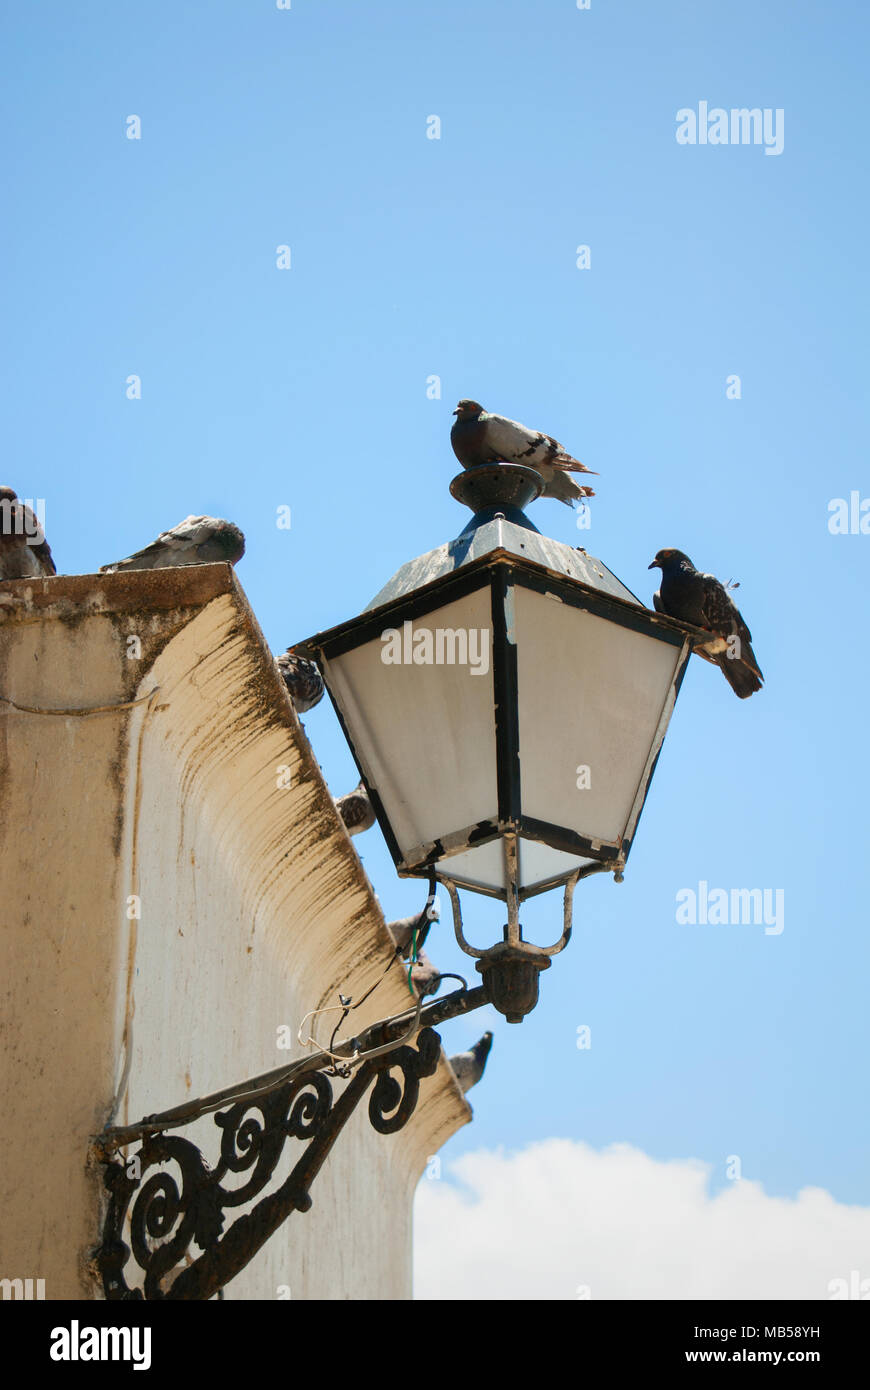 A group of pigeons perched on a building and old light fixture. - Stock Image